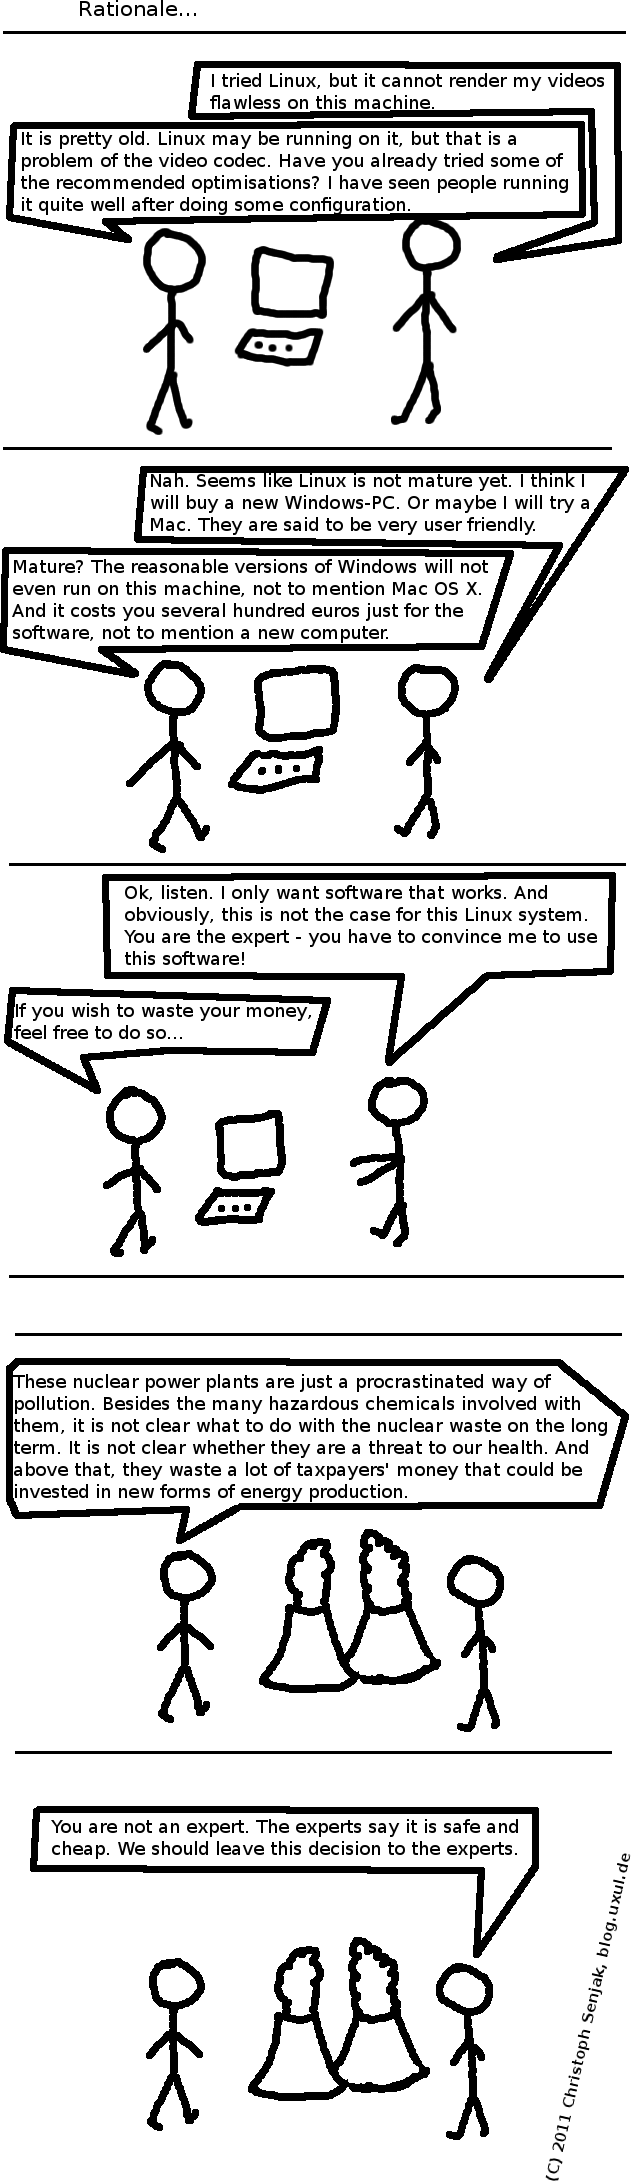 "Panel 1: Person A and Person B in front of a computer. B: ""I tried Linux, but it cannot render my videos flawless on this machine."" A: ""It is pretty old. Linux may be running on it, but that is a problem of the video codec. Have you already tried some of the recommended optimisations? I have seen people running it quite well after doing some configuration."" -- Panel 2: B: ""Nah. Seems like Linux is not mature yet. I think I will buy a new Windows-PC. Or maybe I will try a Mac. They are said to be very user friendly."" A: ""Mature? The reasonable versions of Windows will not even run on this machine, not to mention Mac OS X. And it costs you several hundred euros just for the software, not to mention a new computer."" -- Panel 3: B: ""Ok, listen. I only want software that works. And obviously, this is not the case for this Linux system. You are the expert - you have to convince me to use this software!"" A: ""If you wish to waste your money, feel free to do so..."" -- Panel 4-5: Now A and B are standing in front of a nuclear power plant. A: ""These nuclear power plants are just a procrastinated way of pollution. Besides the many hazardous chemicals involved with them, it is not clear what to do with the nuclear waste on the long term. It is not clear whether they are a threat to our health. And above that, they waste a lot of taxpayers' money that could be invested in new forms of energy production."" B: ""You are not an expert. The experts say it is safe and cheap. We should leave this decision to the experts."""